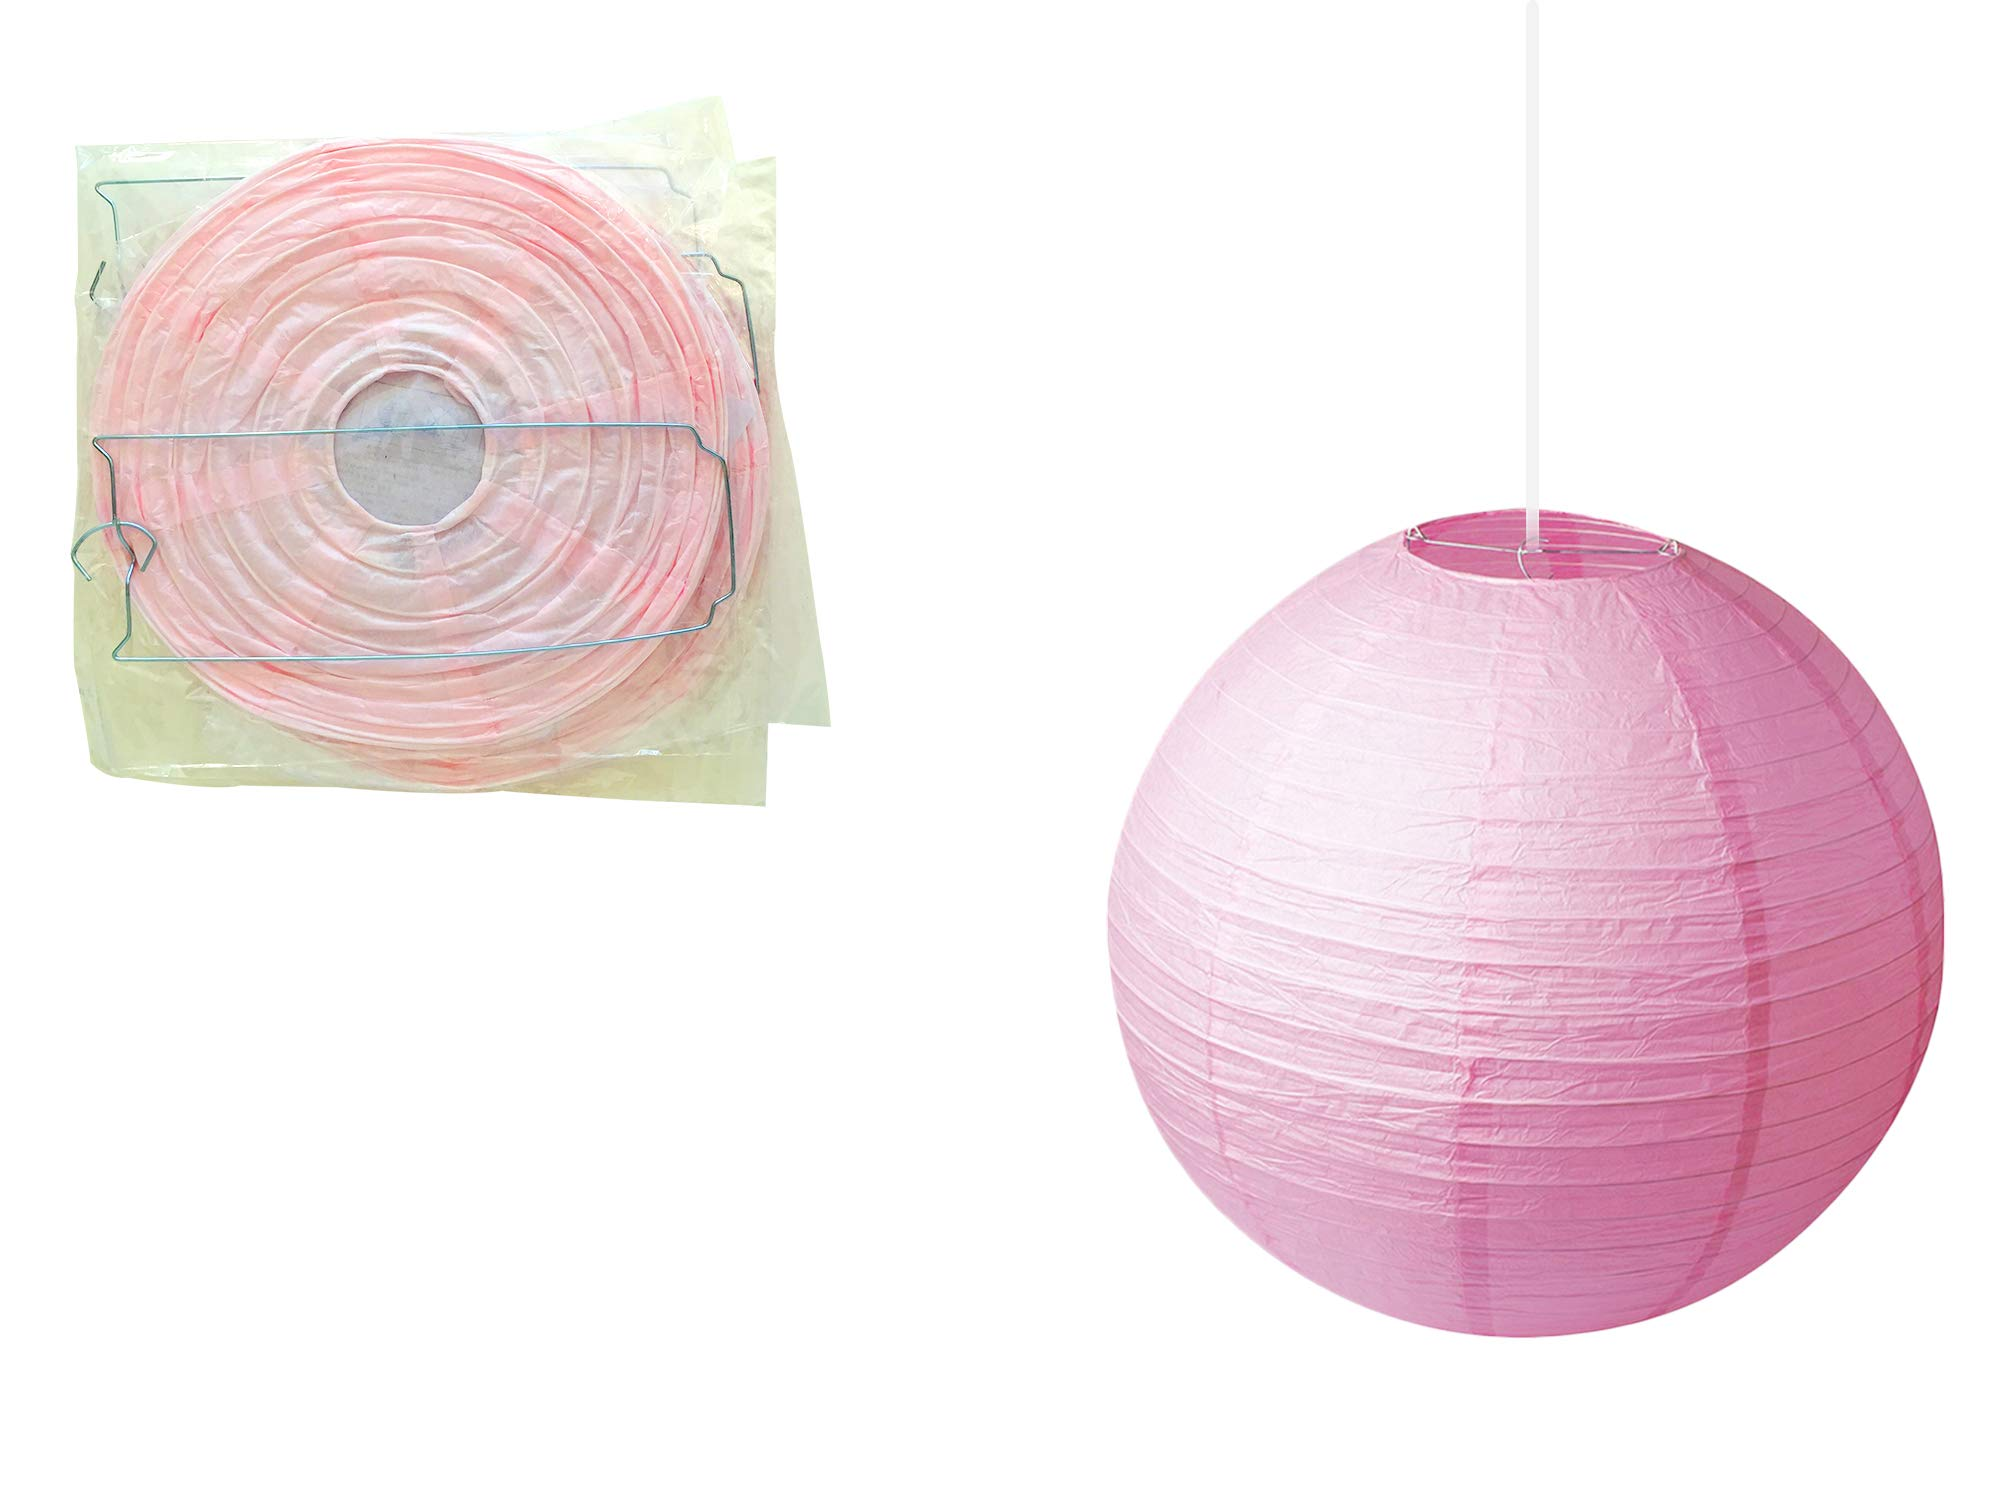 ATSON Baby Shower Decorations for Girl 41pc   It's A Girl & Baby Shower Banner   Tassels   Pompom Flowers   Balloons   Paper Lanterns   Honeycomb Balls   Pink,White,Yellow   Easy Assemble by Atson (Image #5)